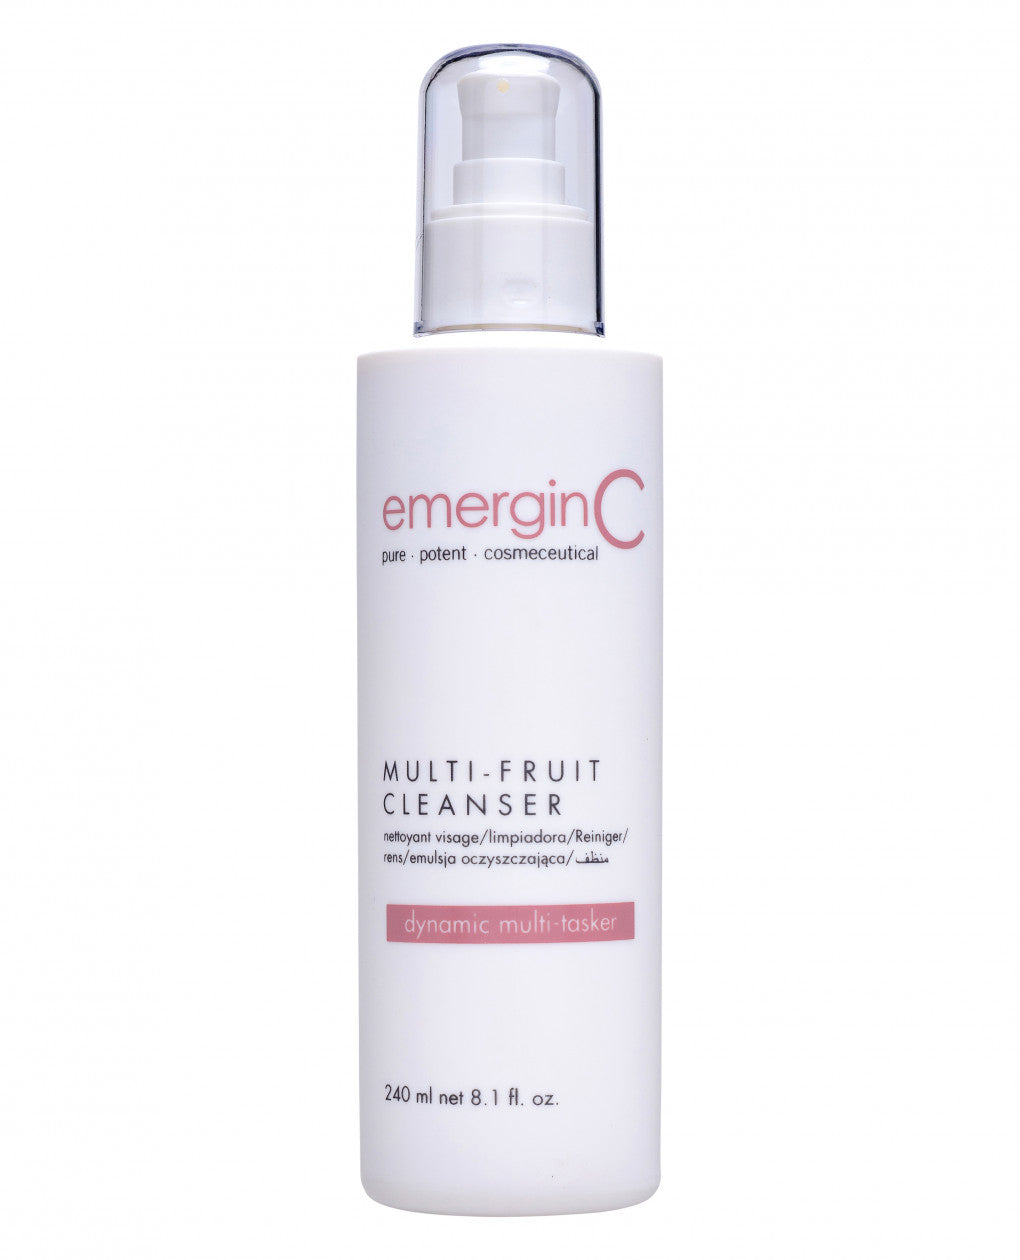 emerginC Cleansers